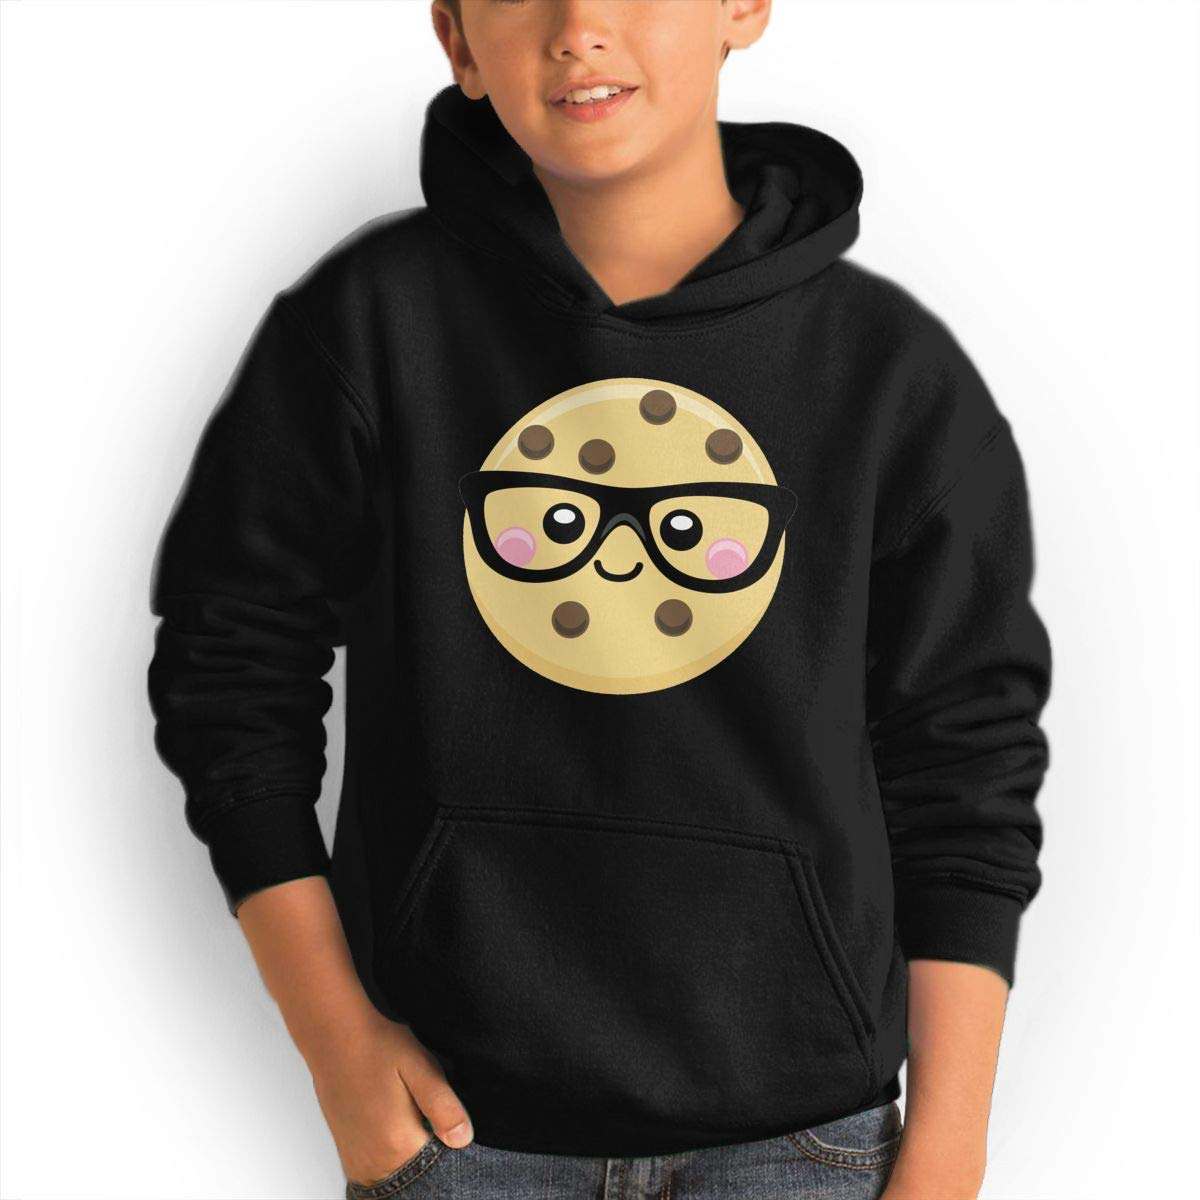 Teen S Rosanna Pansino Hooded Cool Aesthetic Pullover For Girls Teens Shirts